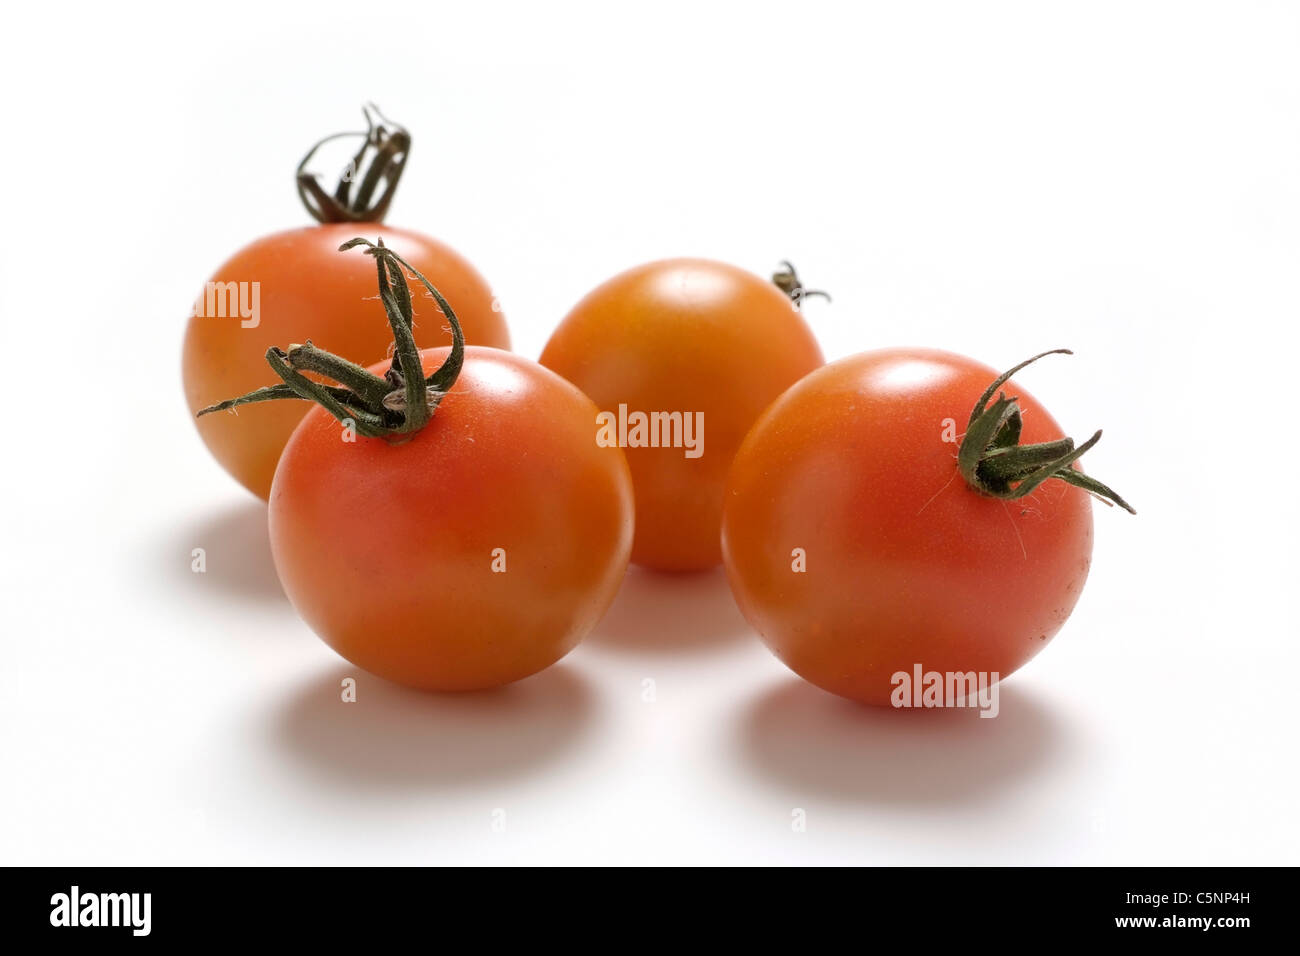 Tomato varieties: Sungella - Stock Image